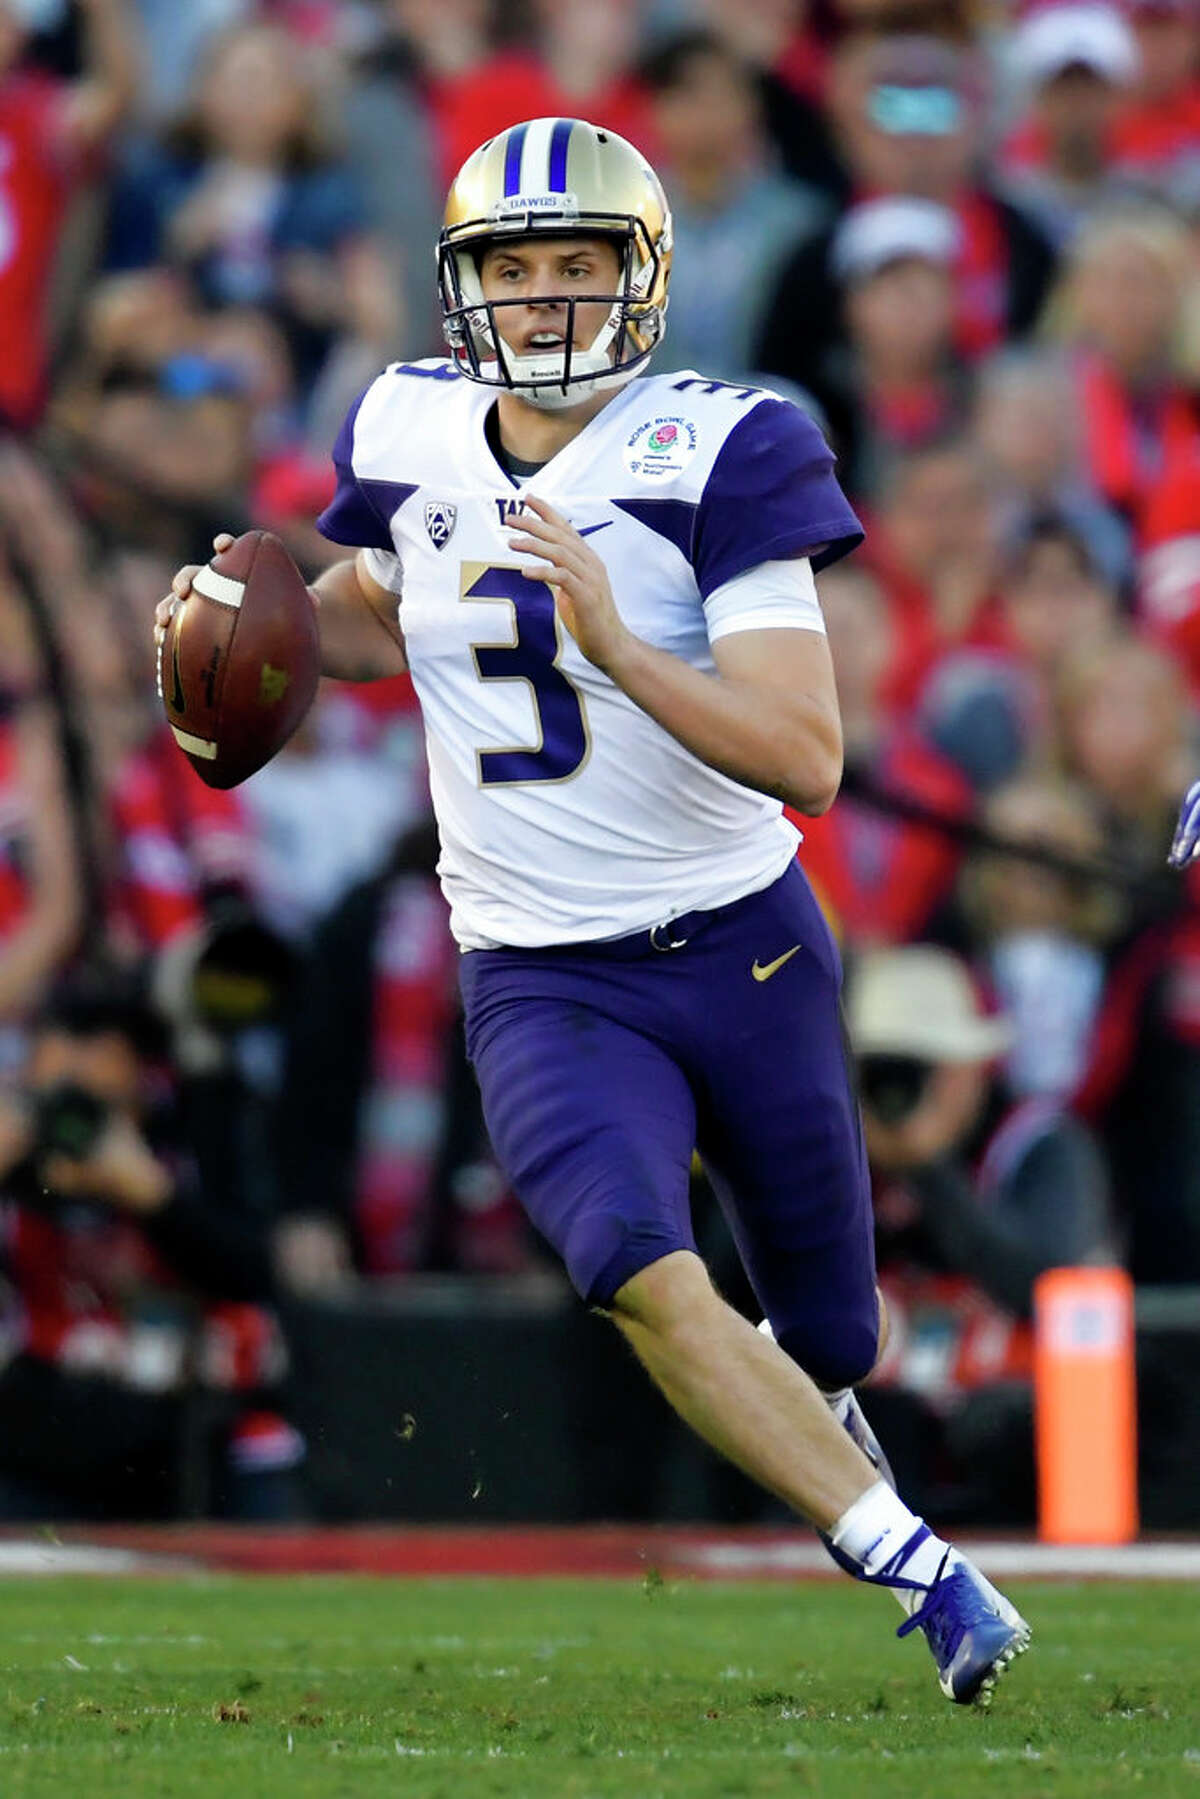 Quarterback Jake Browning Draft projection: 7th round-undrafted